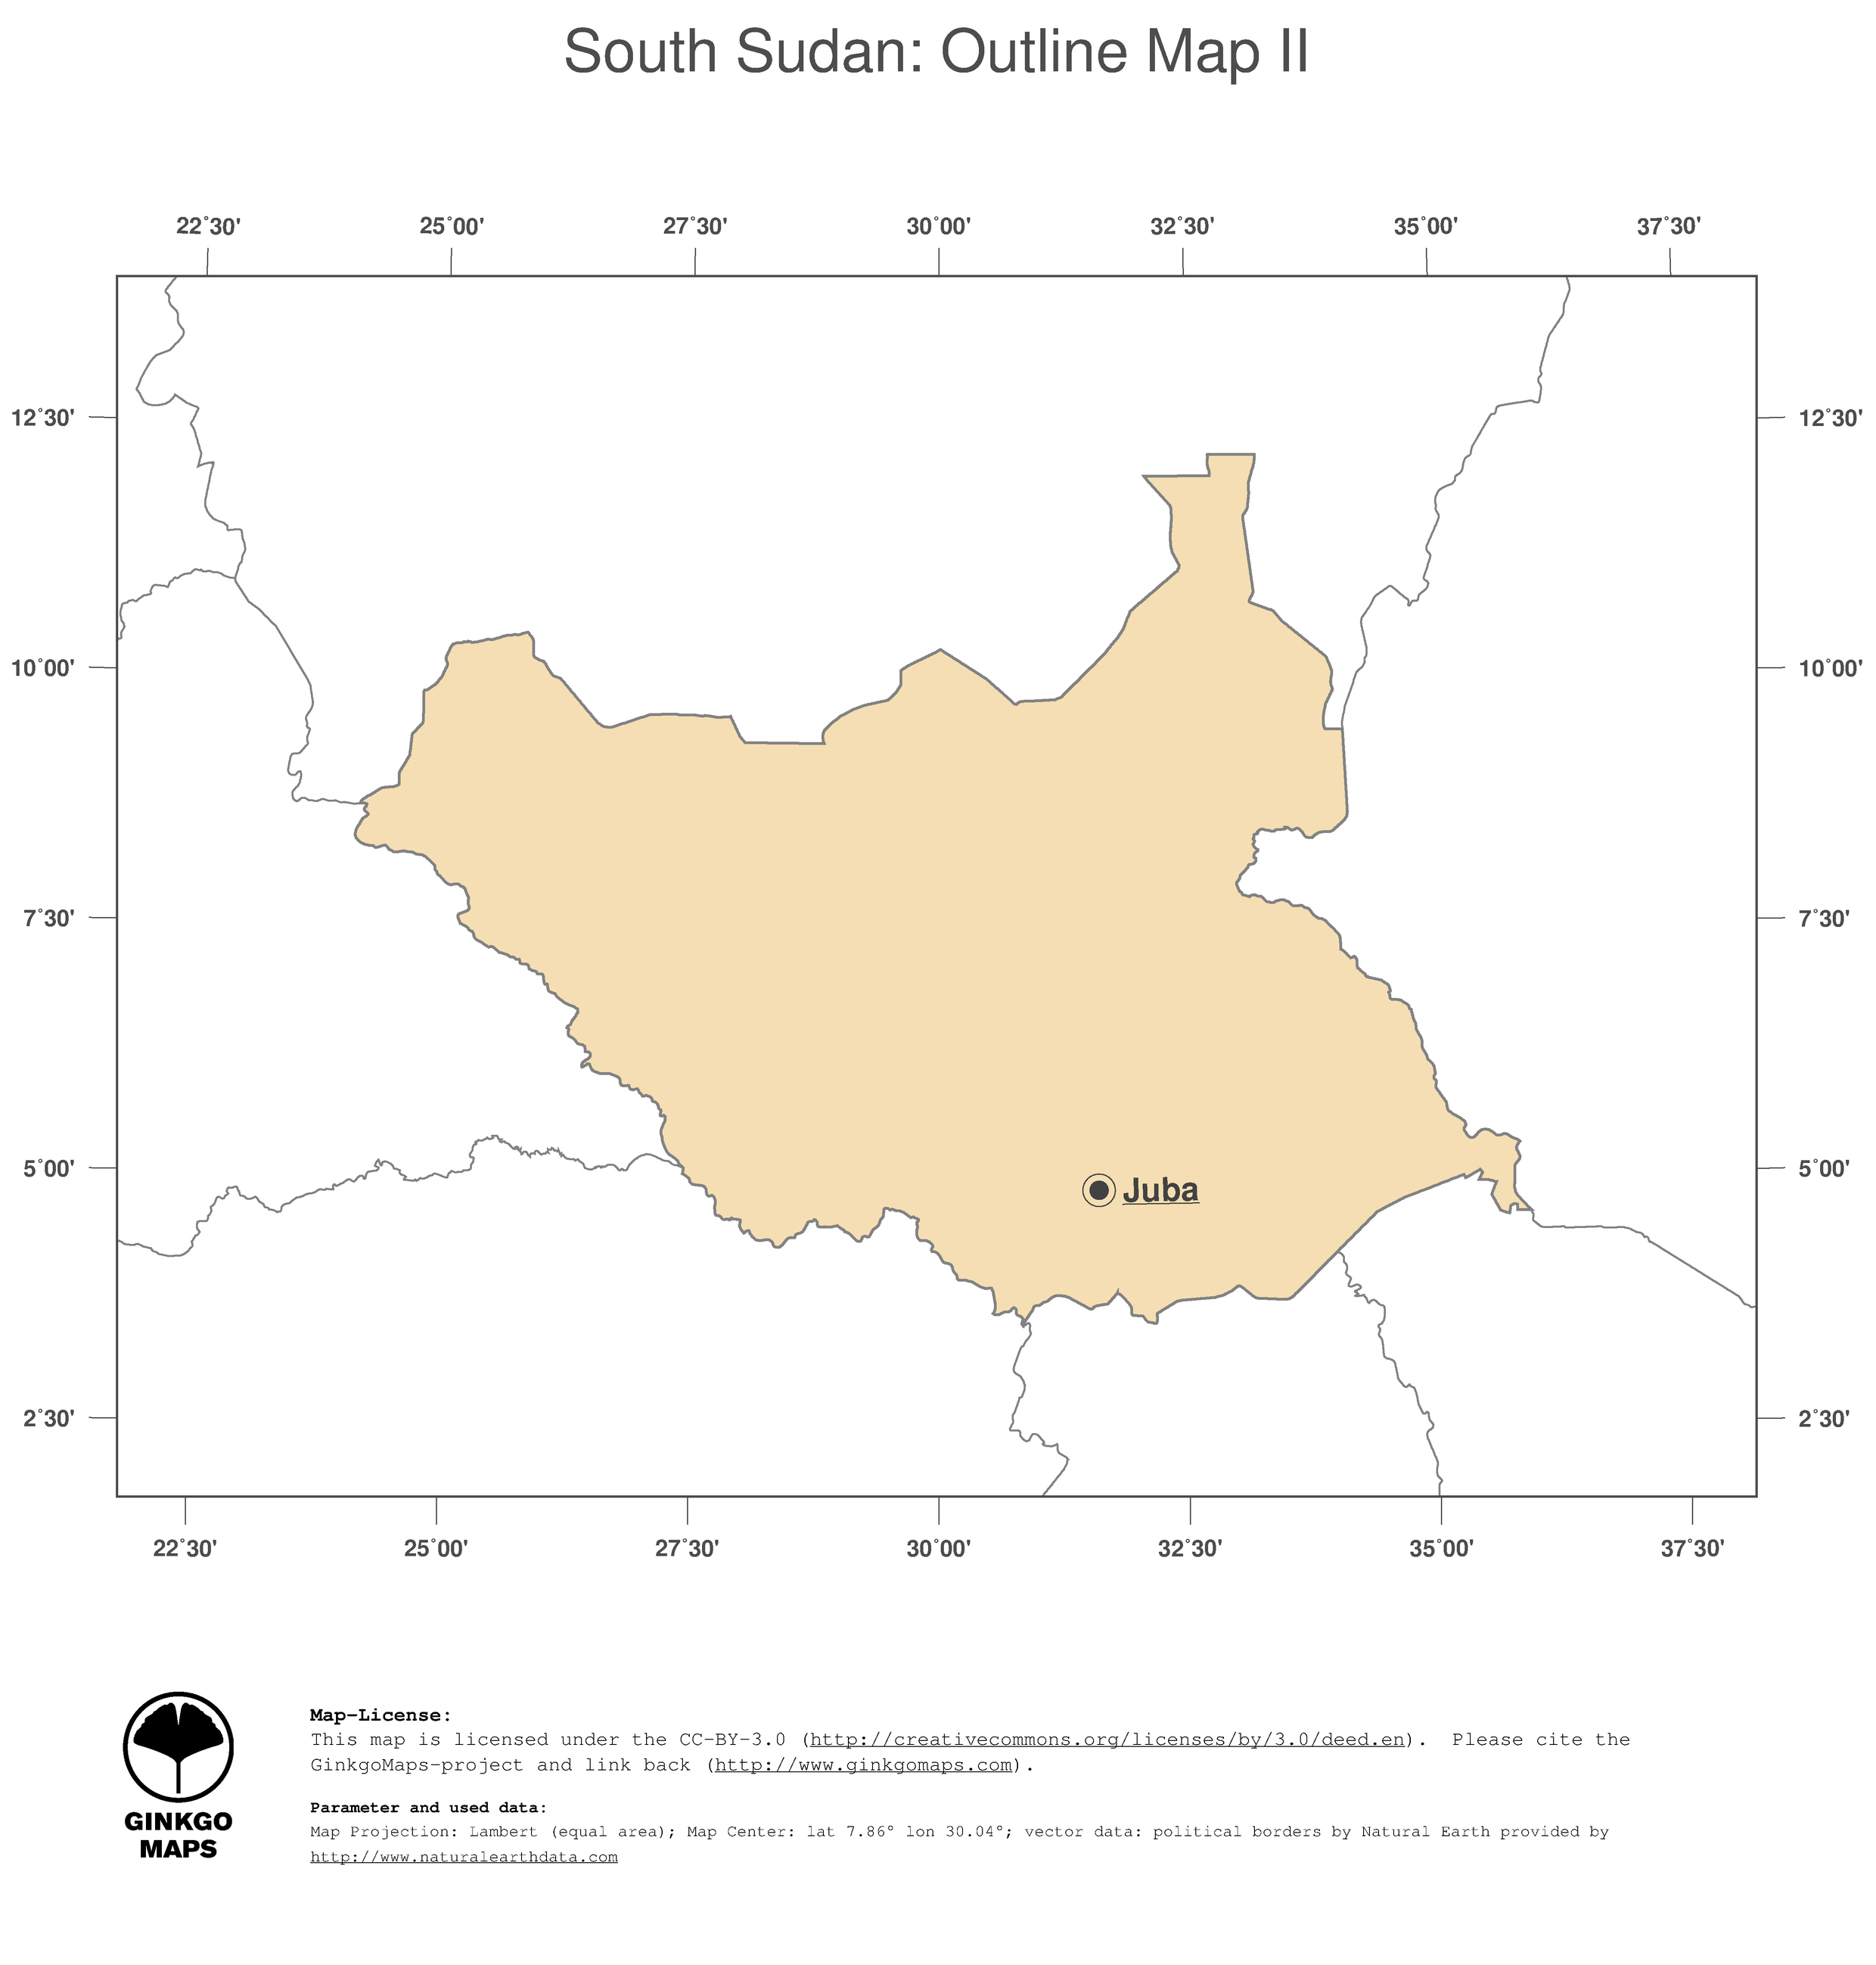 Map South Sudan GinkgoMaps Continent Africa Region South Sudan - What continent is sudan in